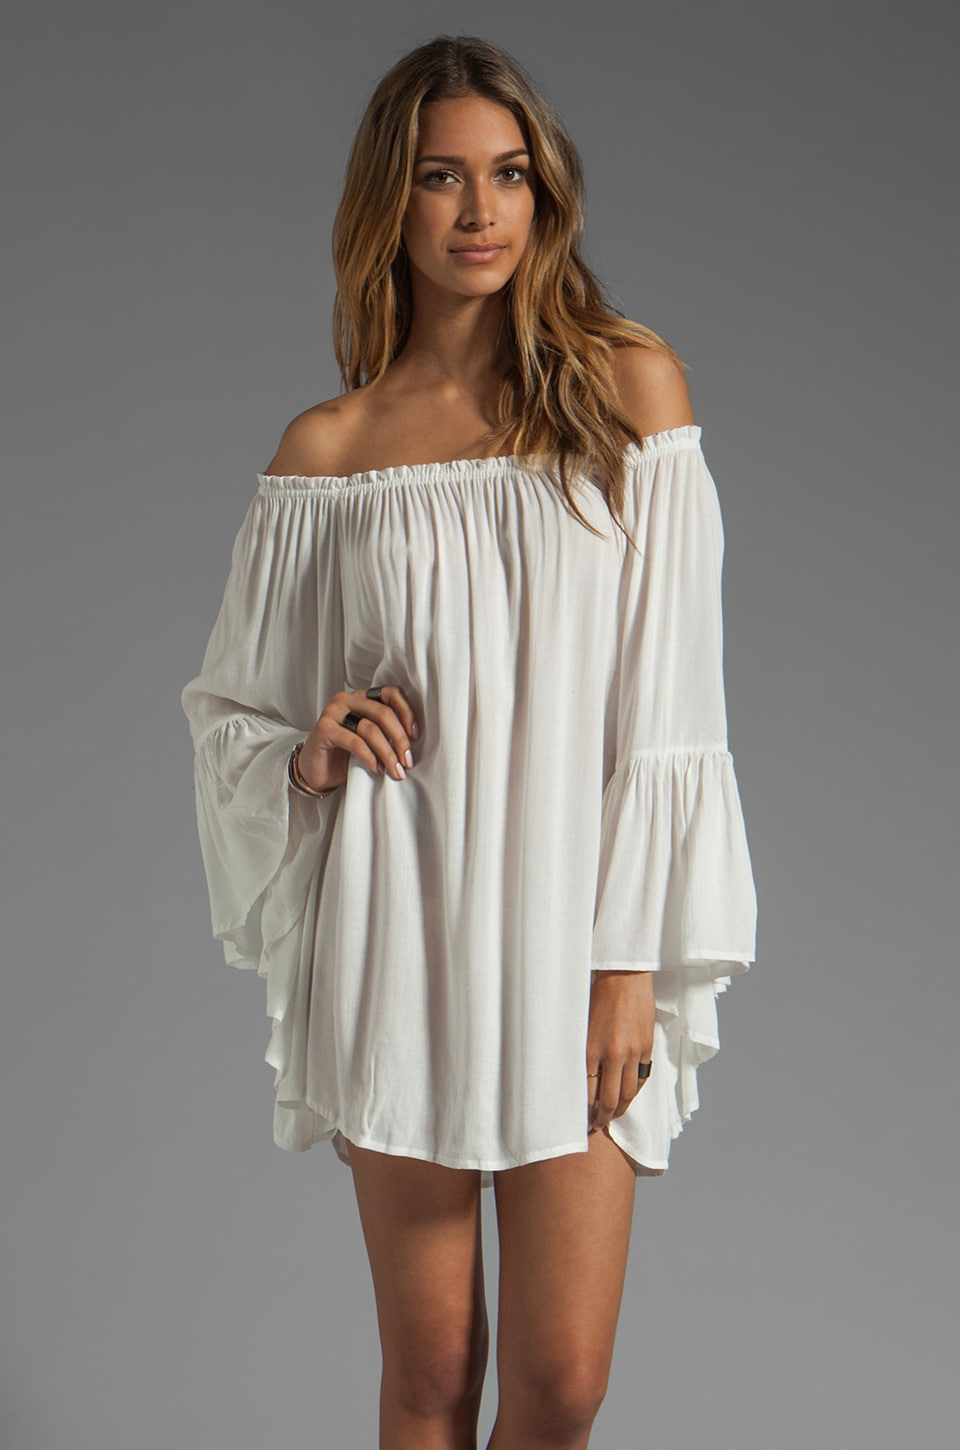 Indah Kamani Ruffle Edge Mini Dress in White